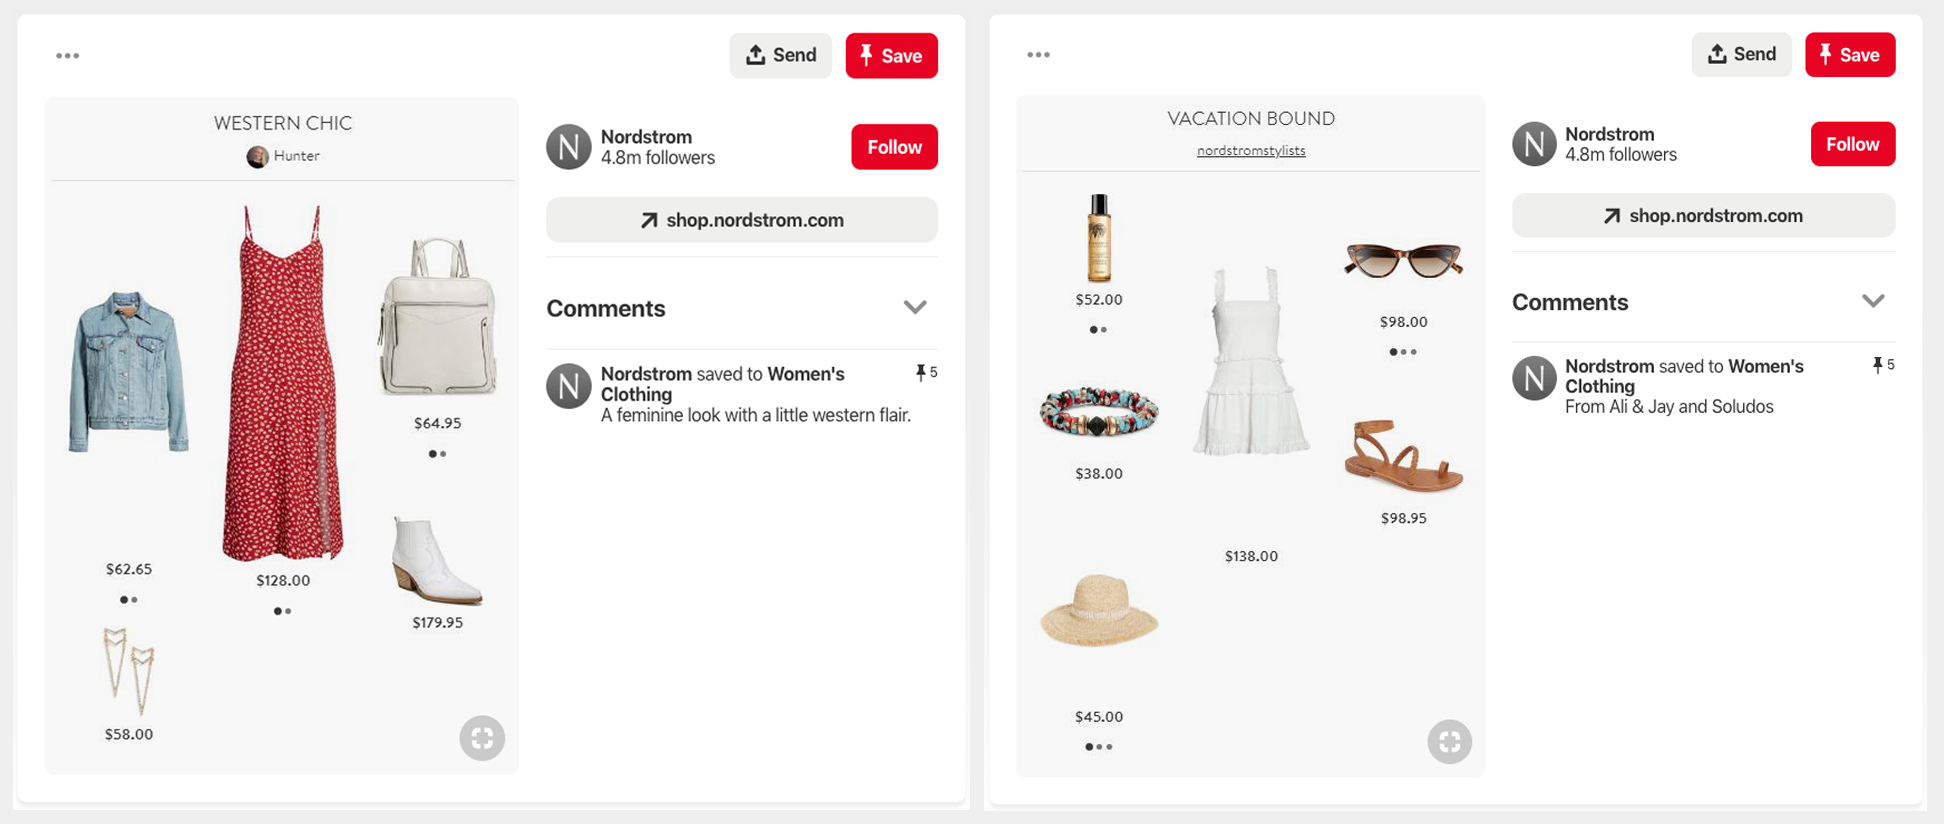 Nordstrom selling on Pinterest Western Chic & Vacation Pins